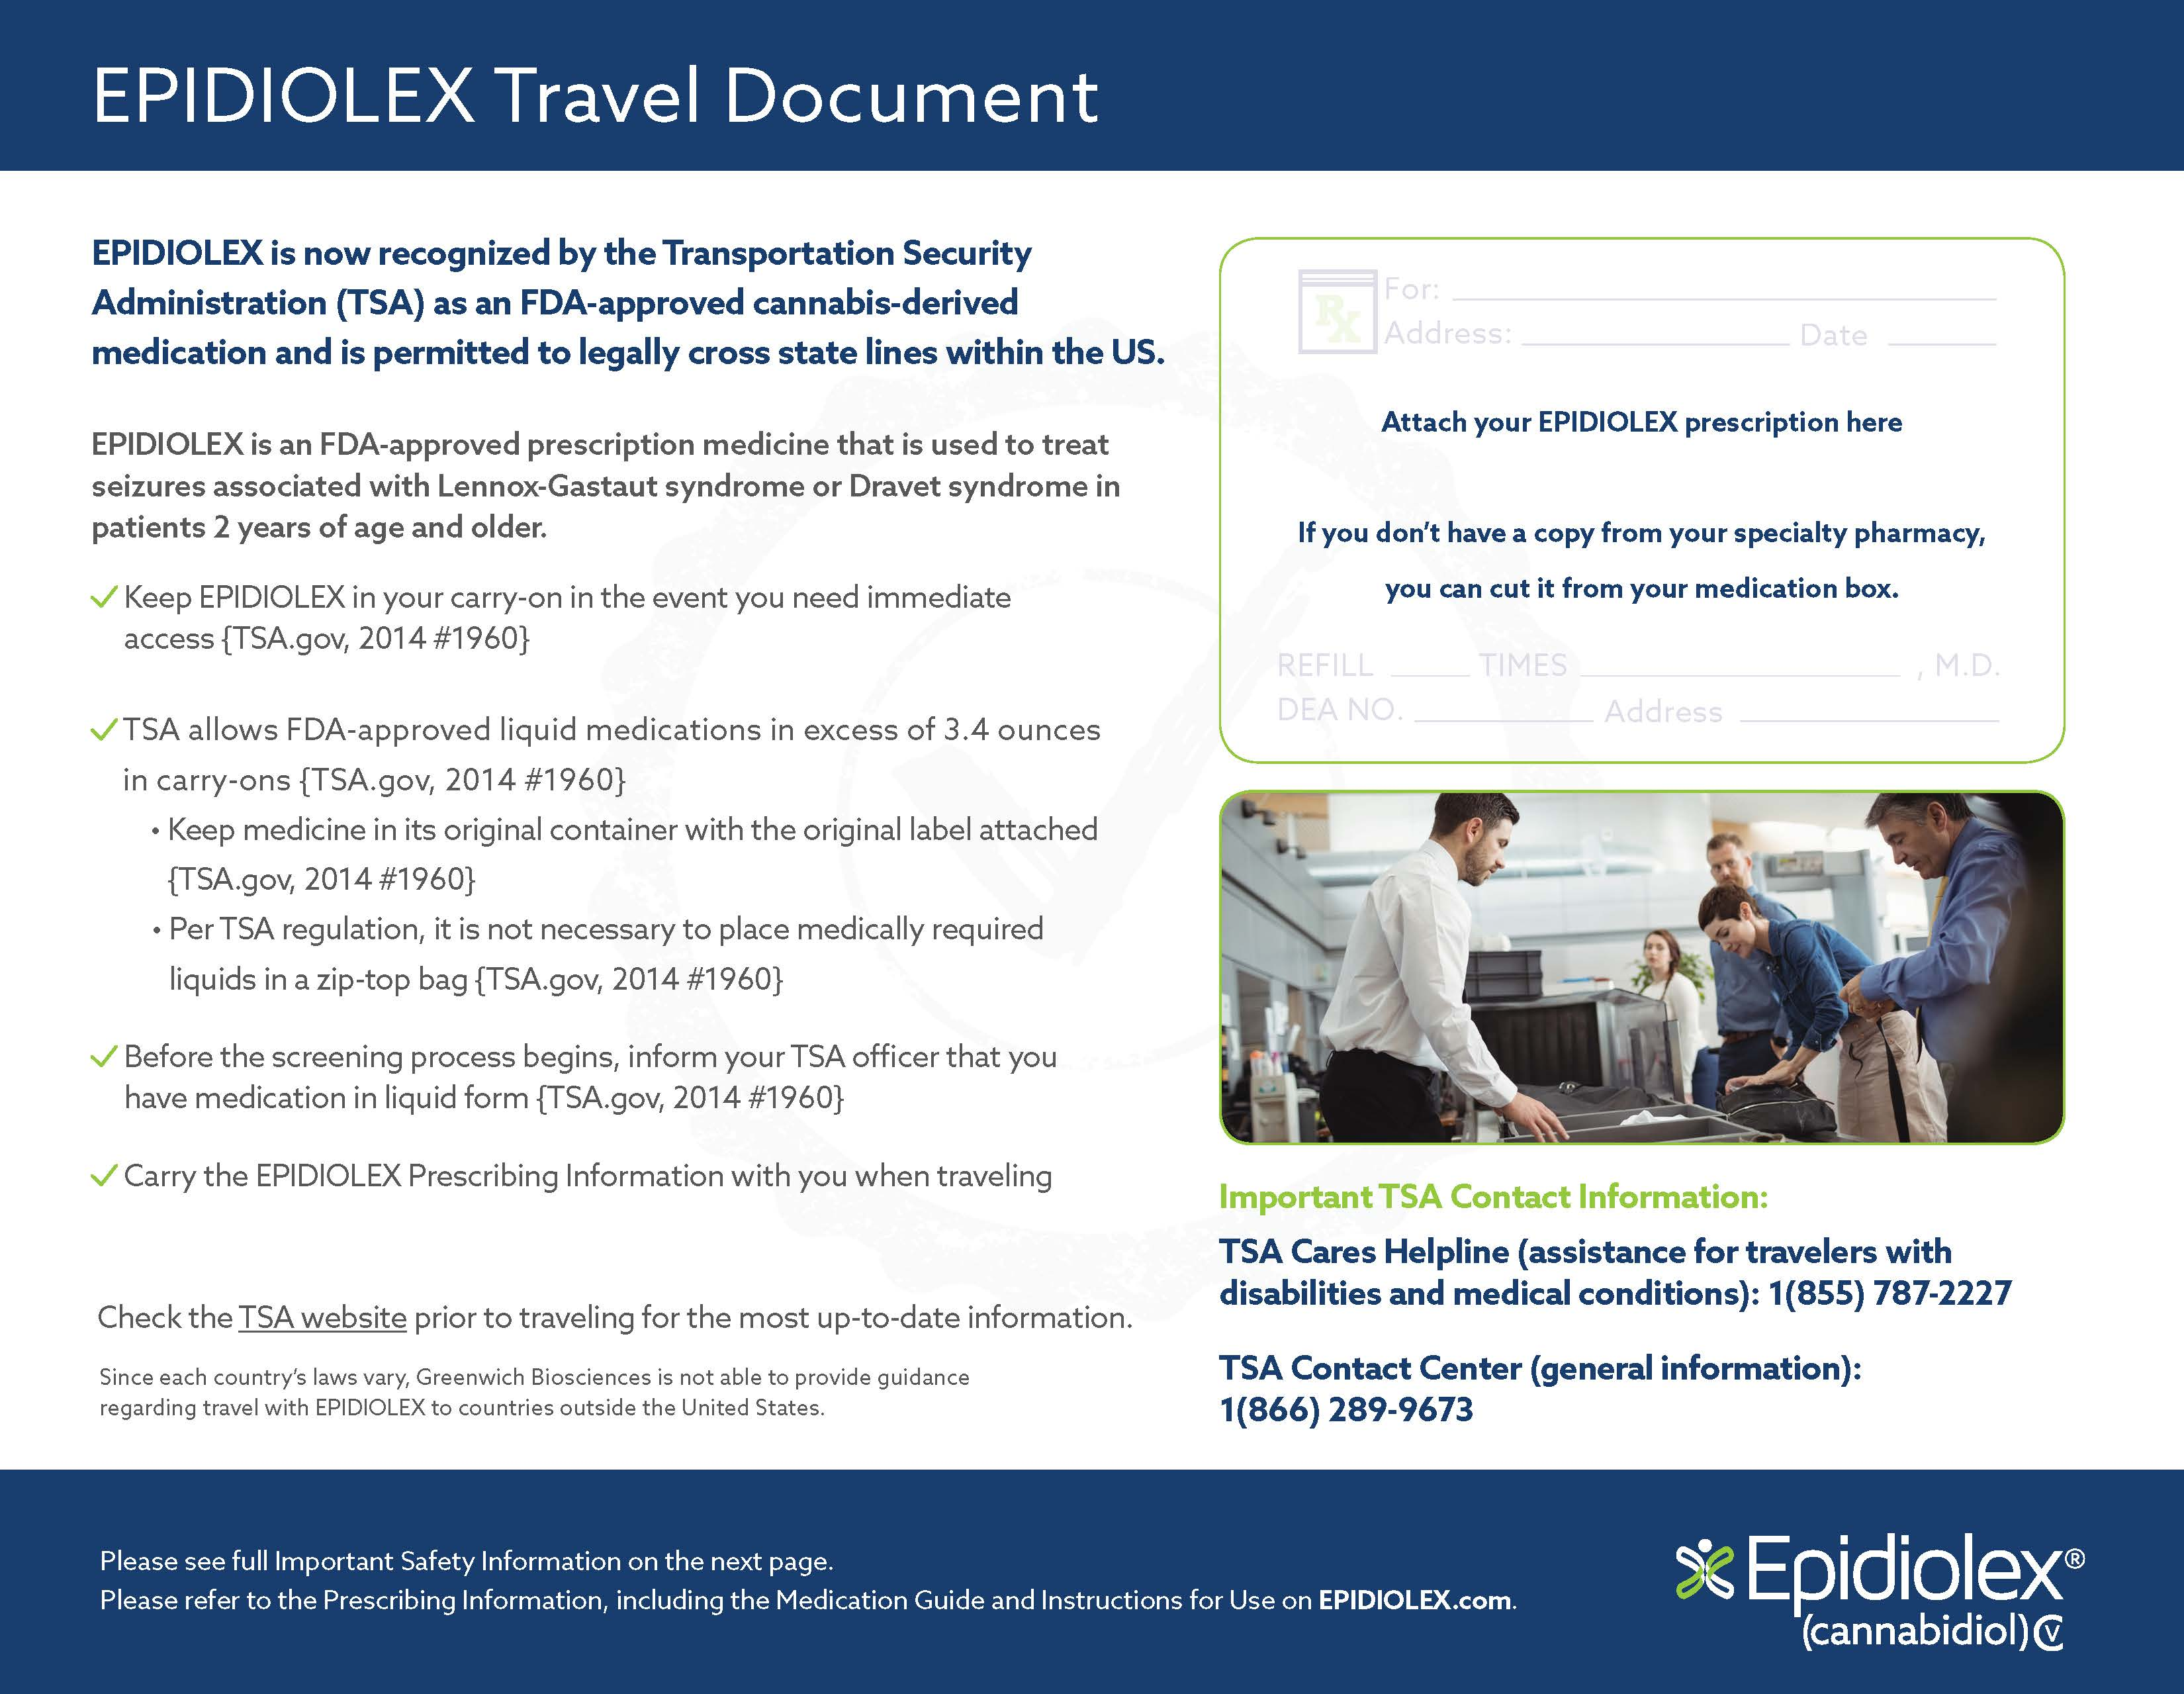 EPX-05954-0519_EPIDIOLEX Travel Document for Caregivers_Page_1_1.jpg